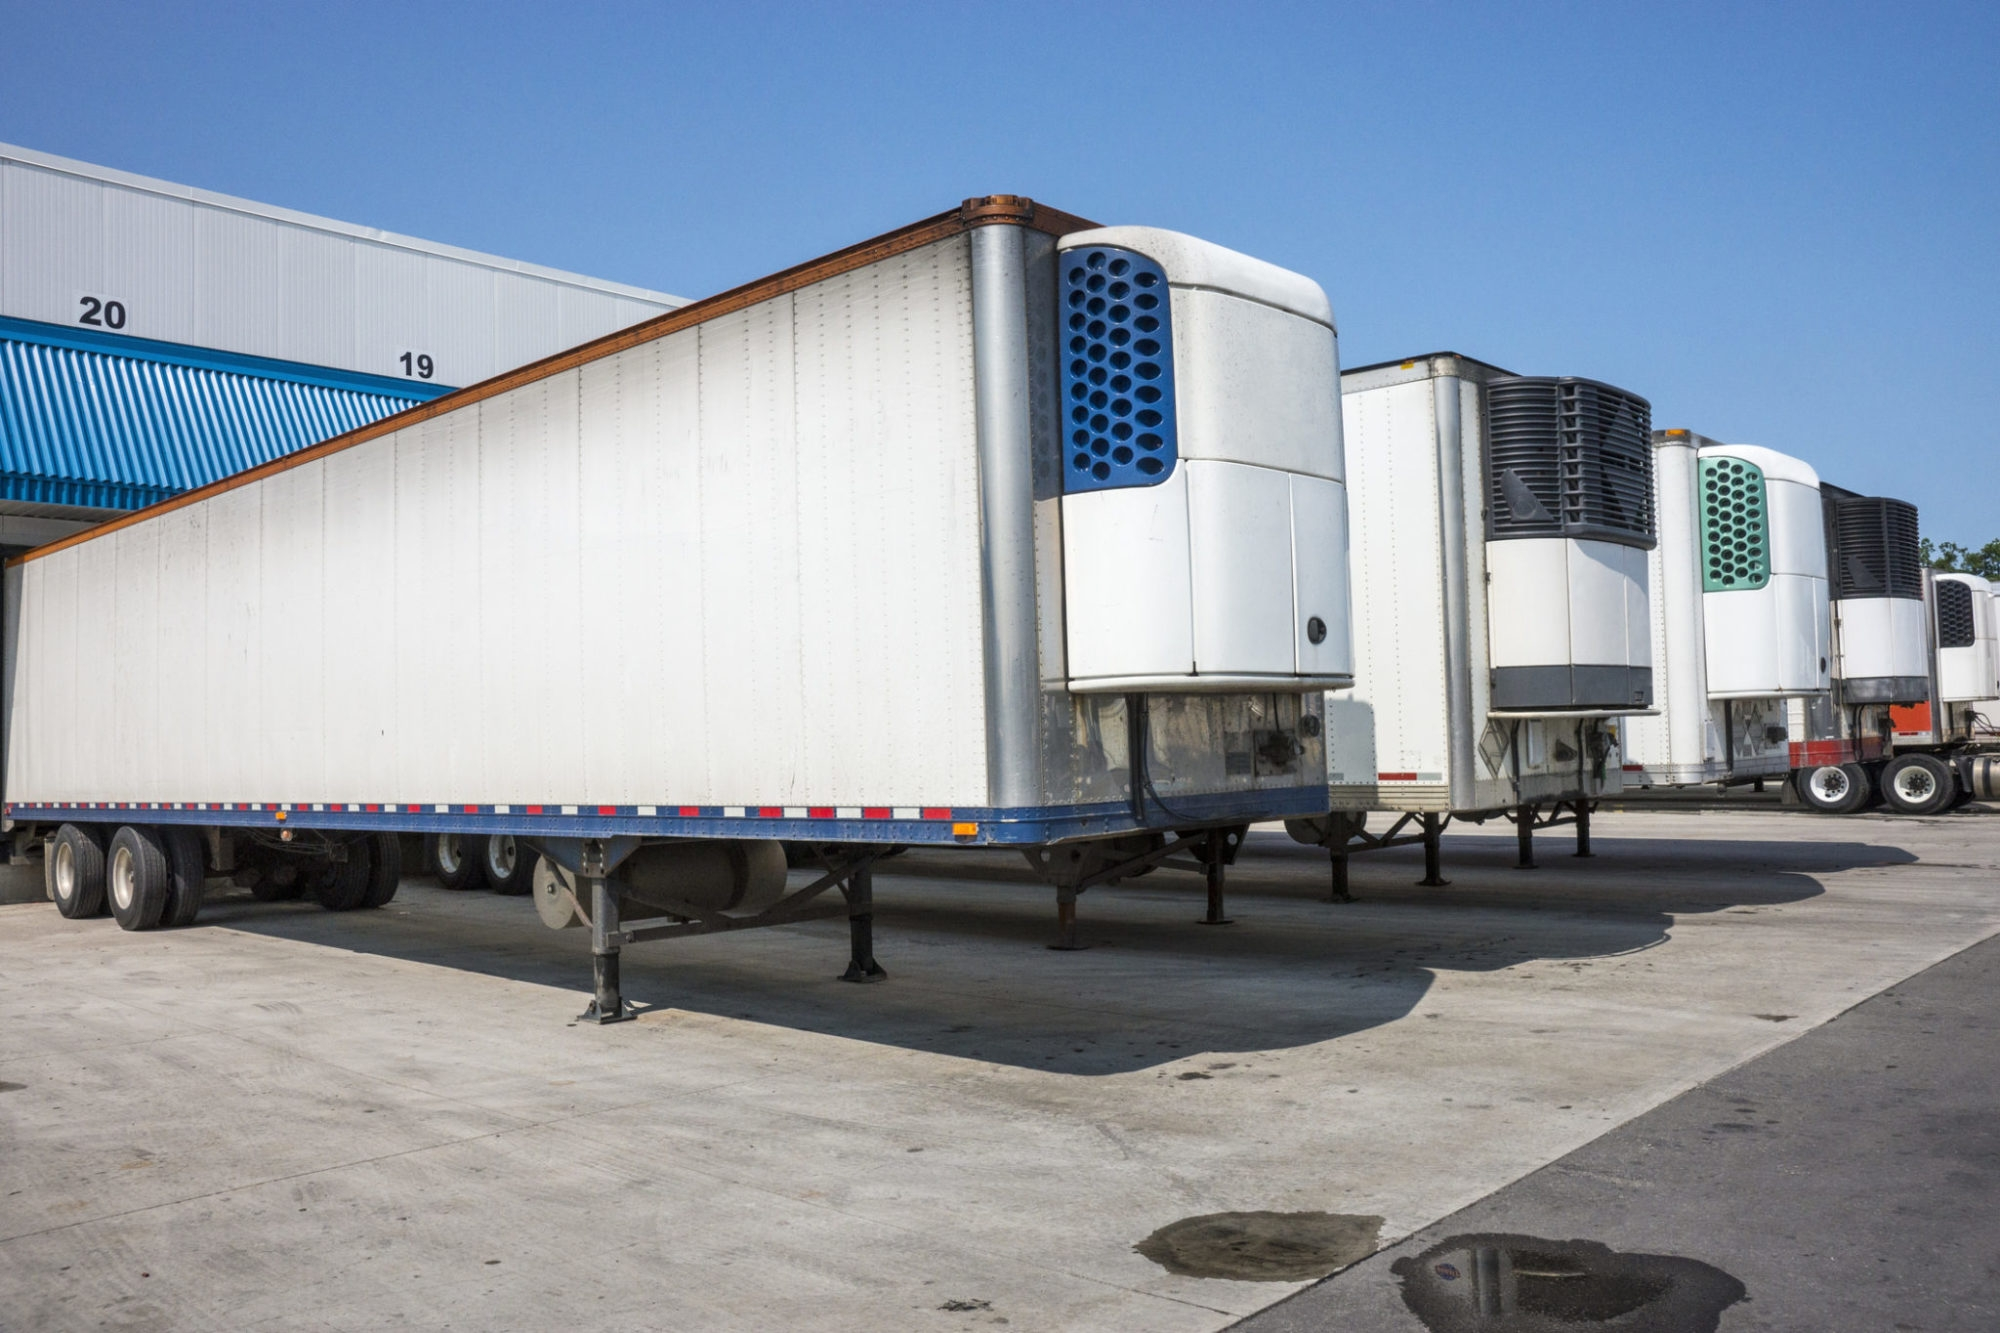 leasing archives todays truckingtodays trucking 53 foot trailer rental invoice template